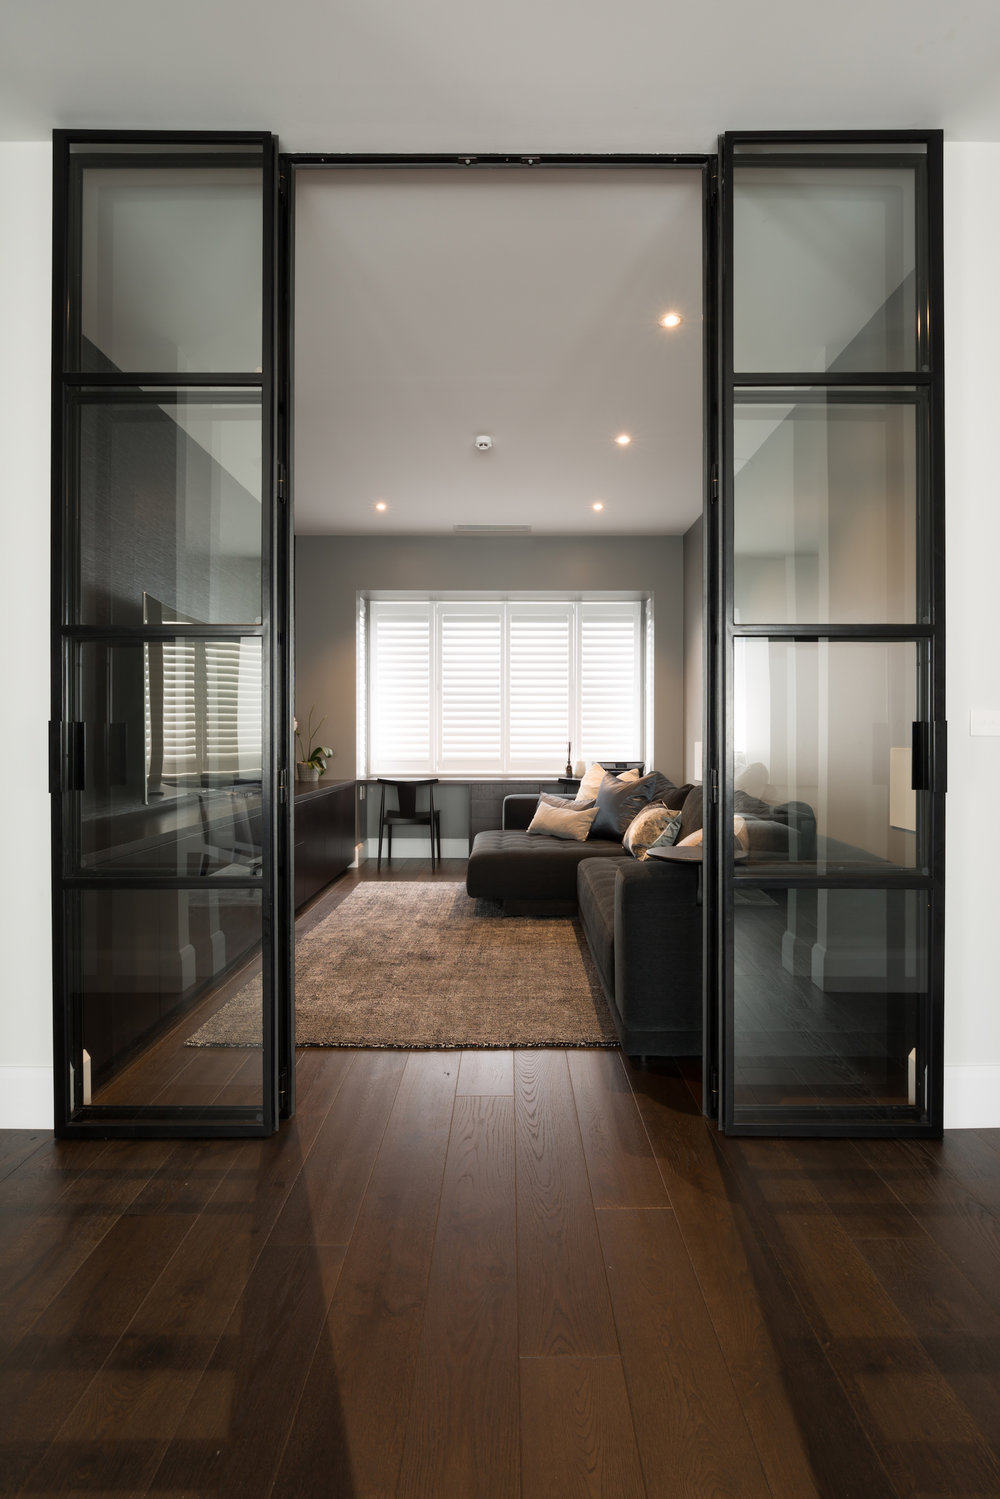 - Contemporary black steel doors lead to the Media room painted in charcoal greys and black stained custom designed joinery.